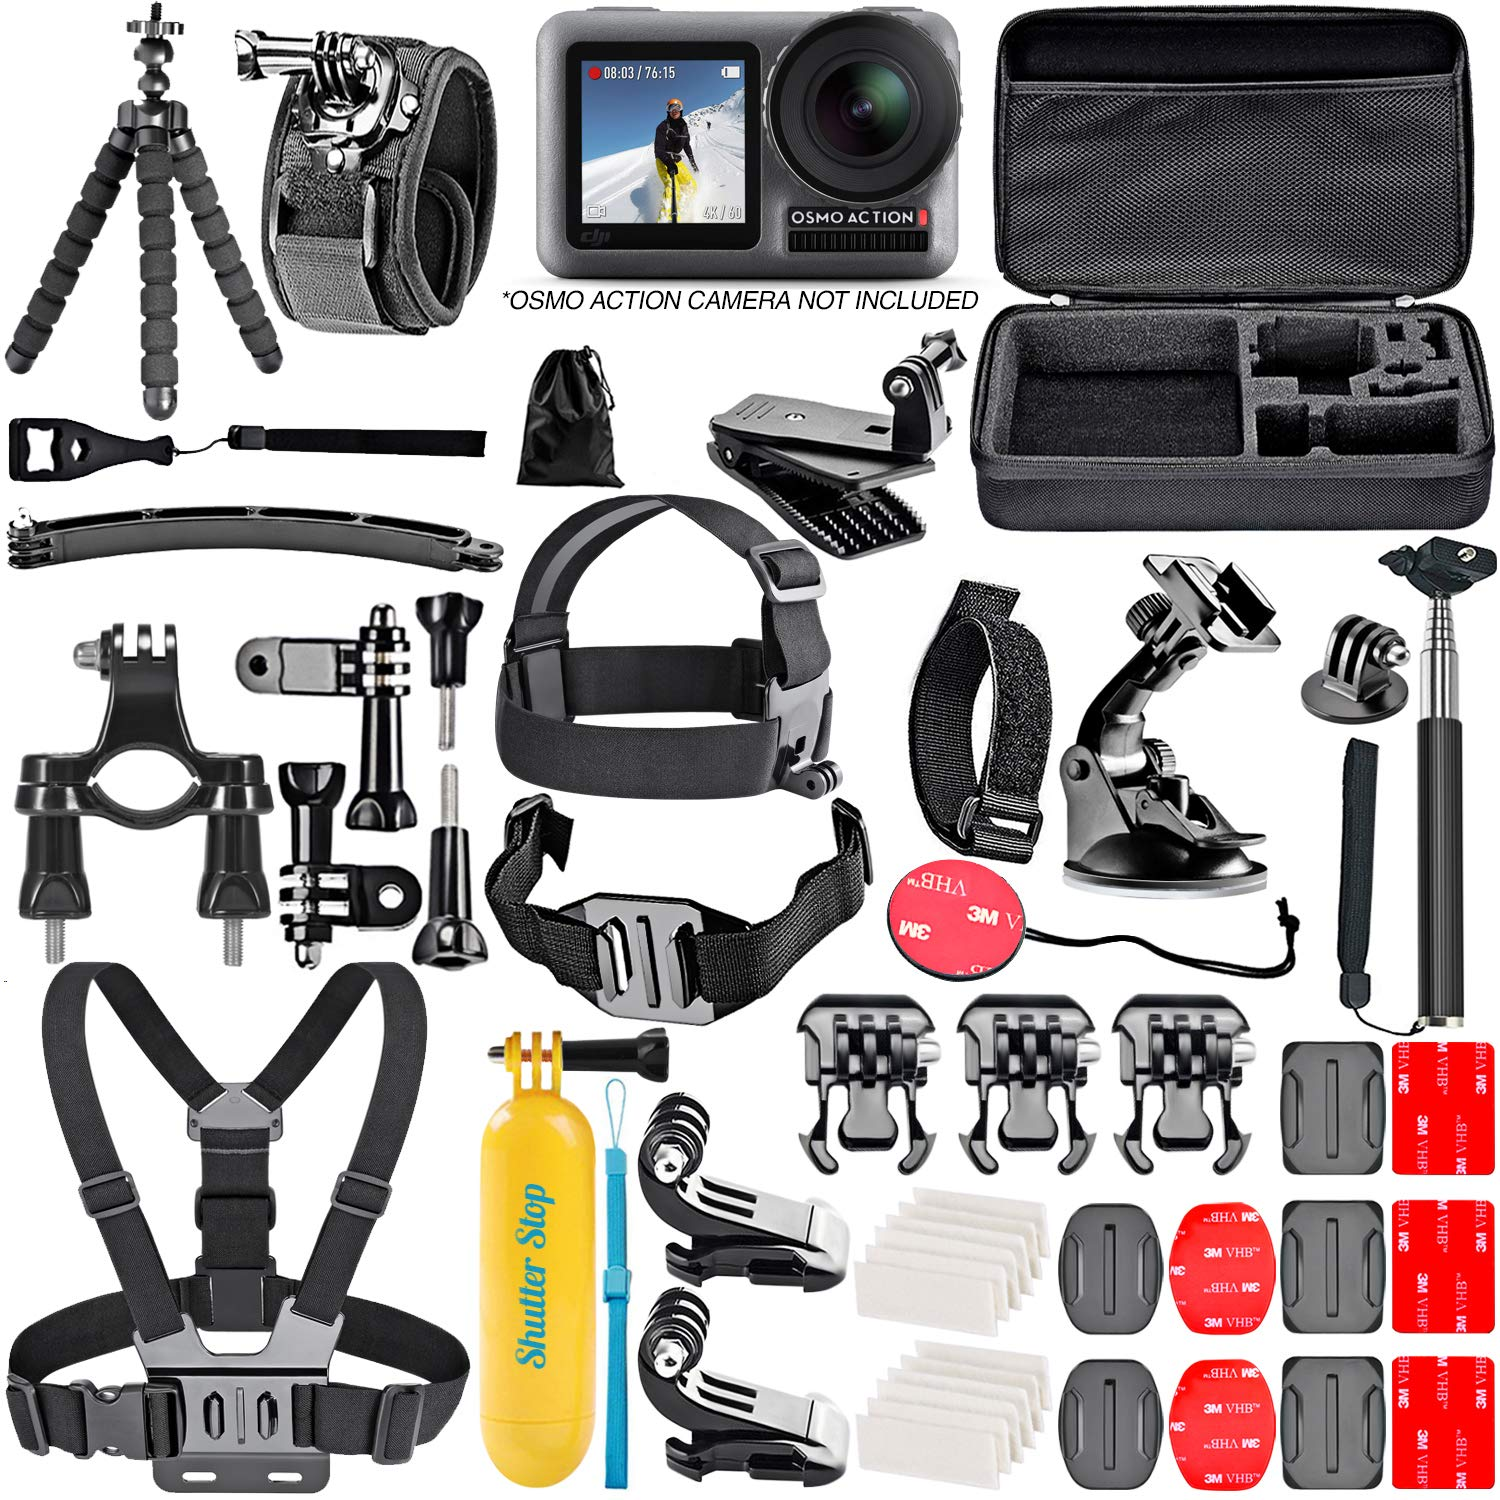 50 Piece Accessory Kit for DJI Osmo Action 4K Camera Action Camera Accessory Bundle